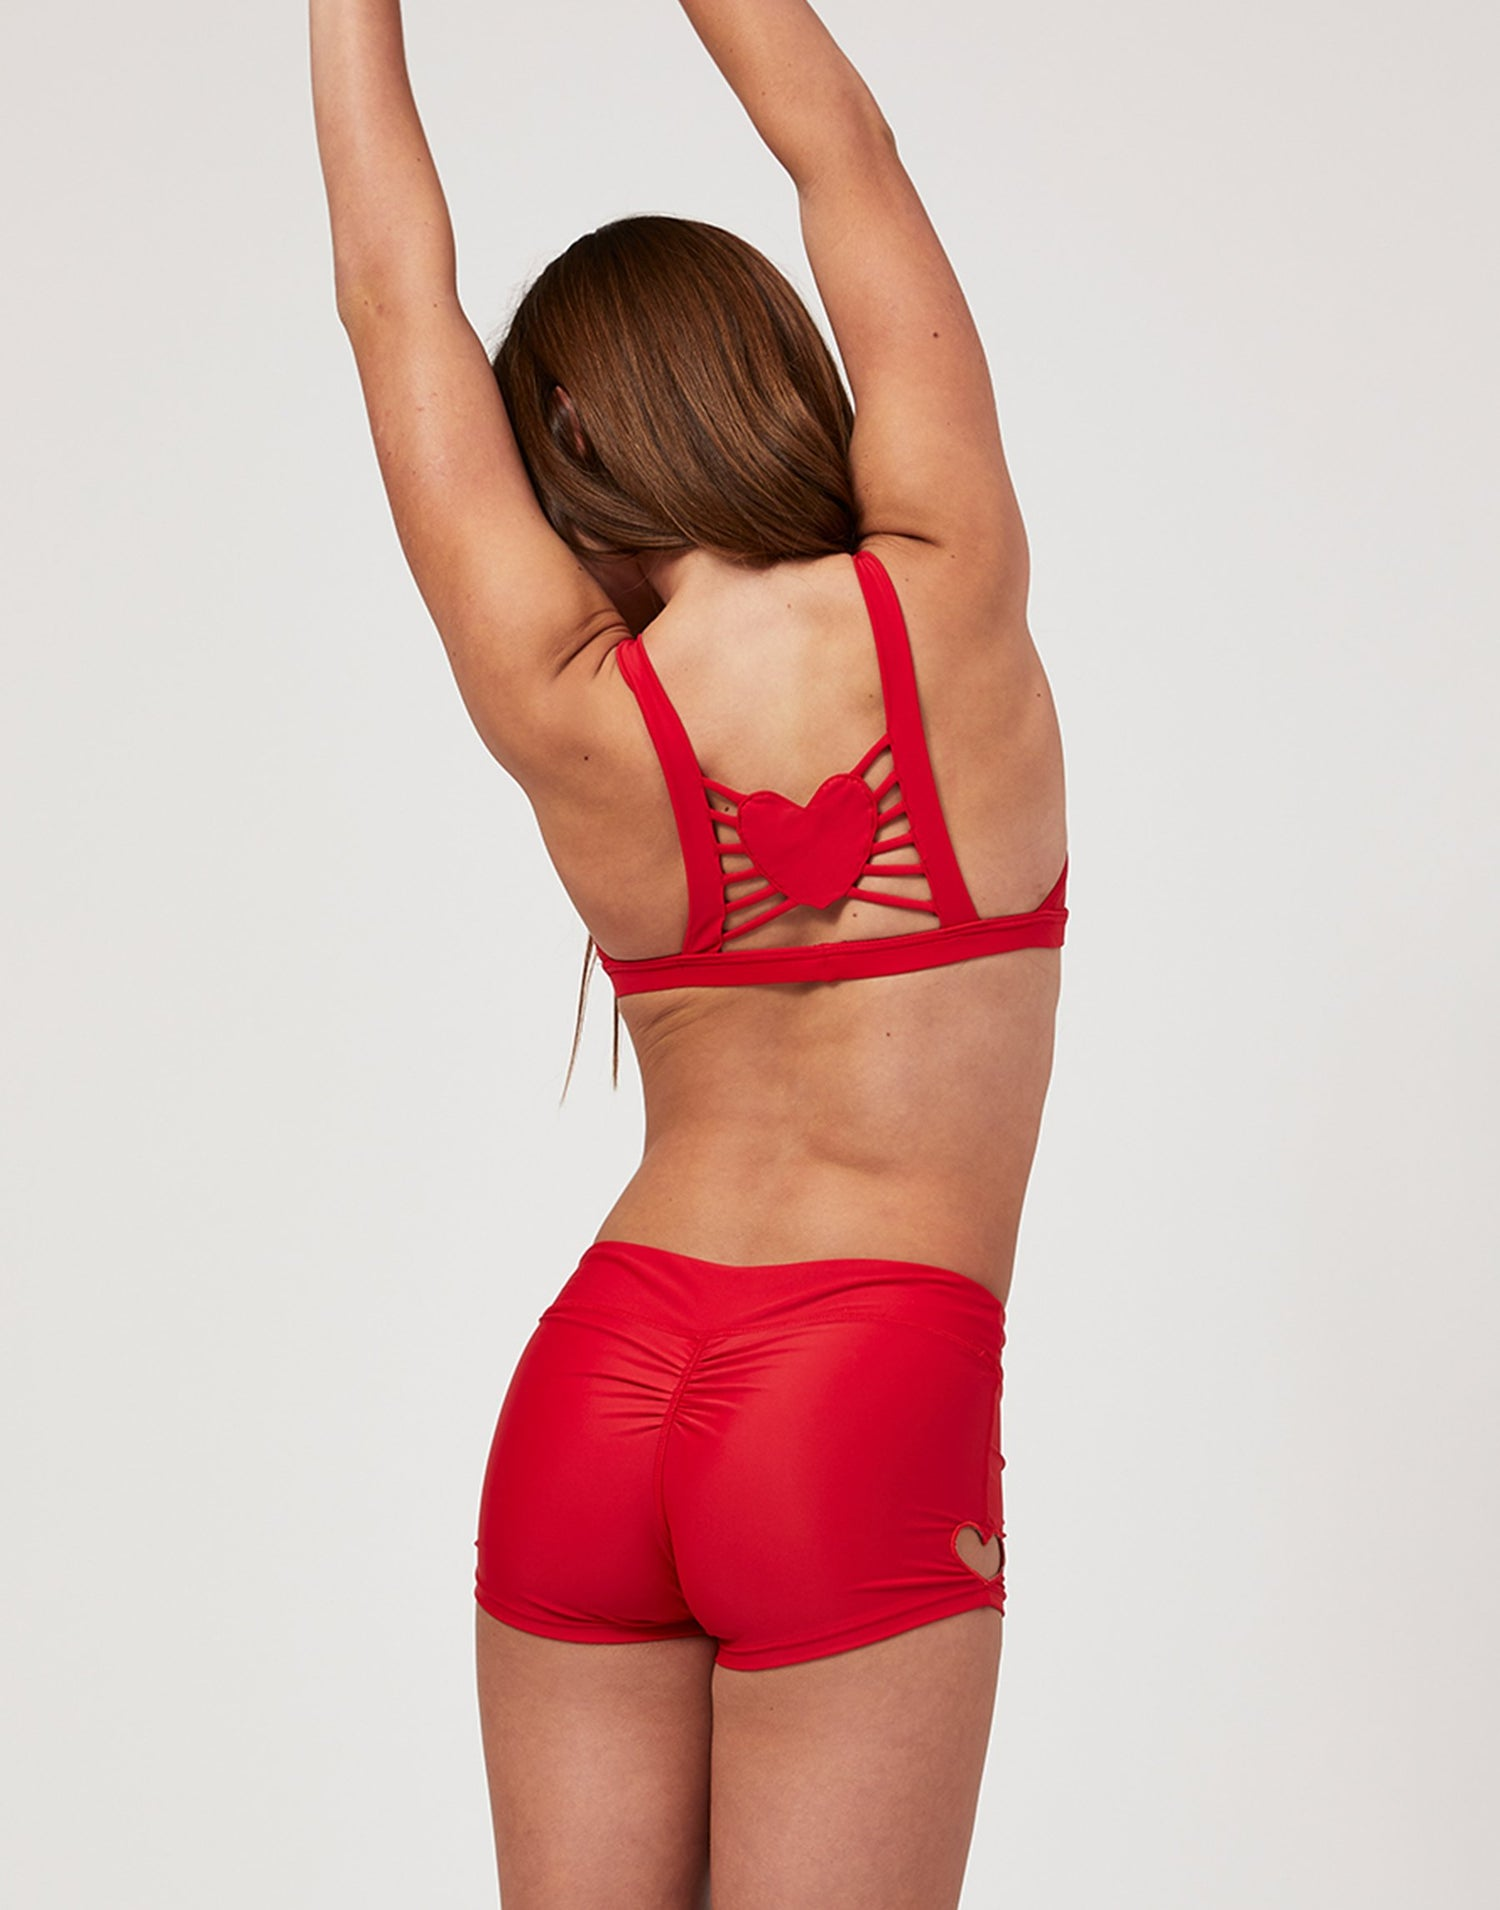 Adult Hartley Short with Heart Cutout in Red - back view